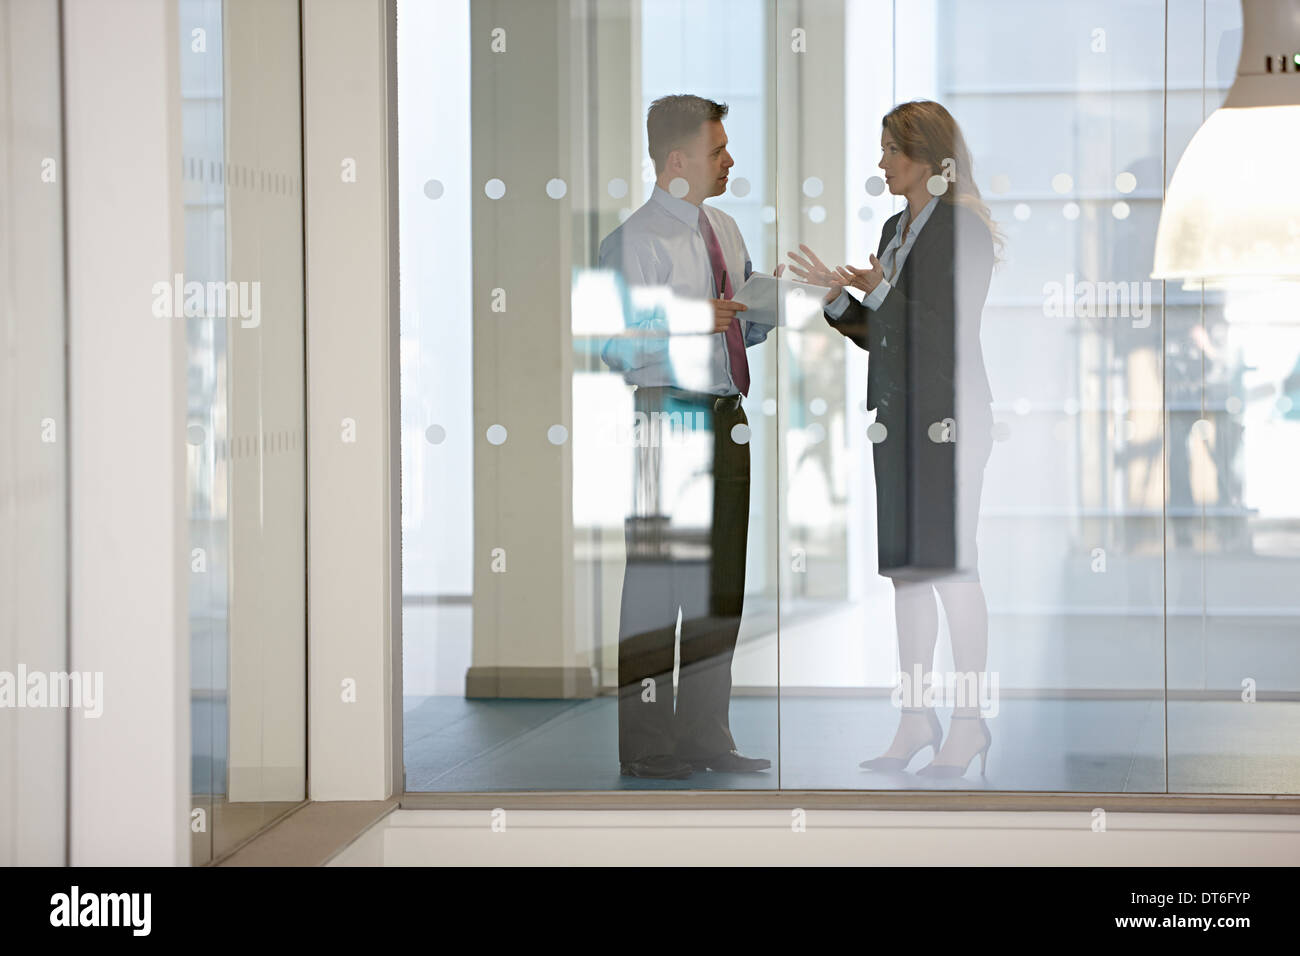 Business colleagues in discussion through glass - Stock Image